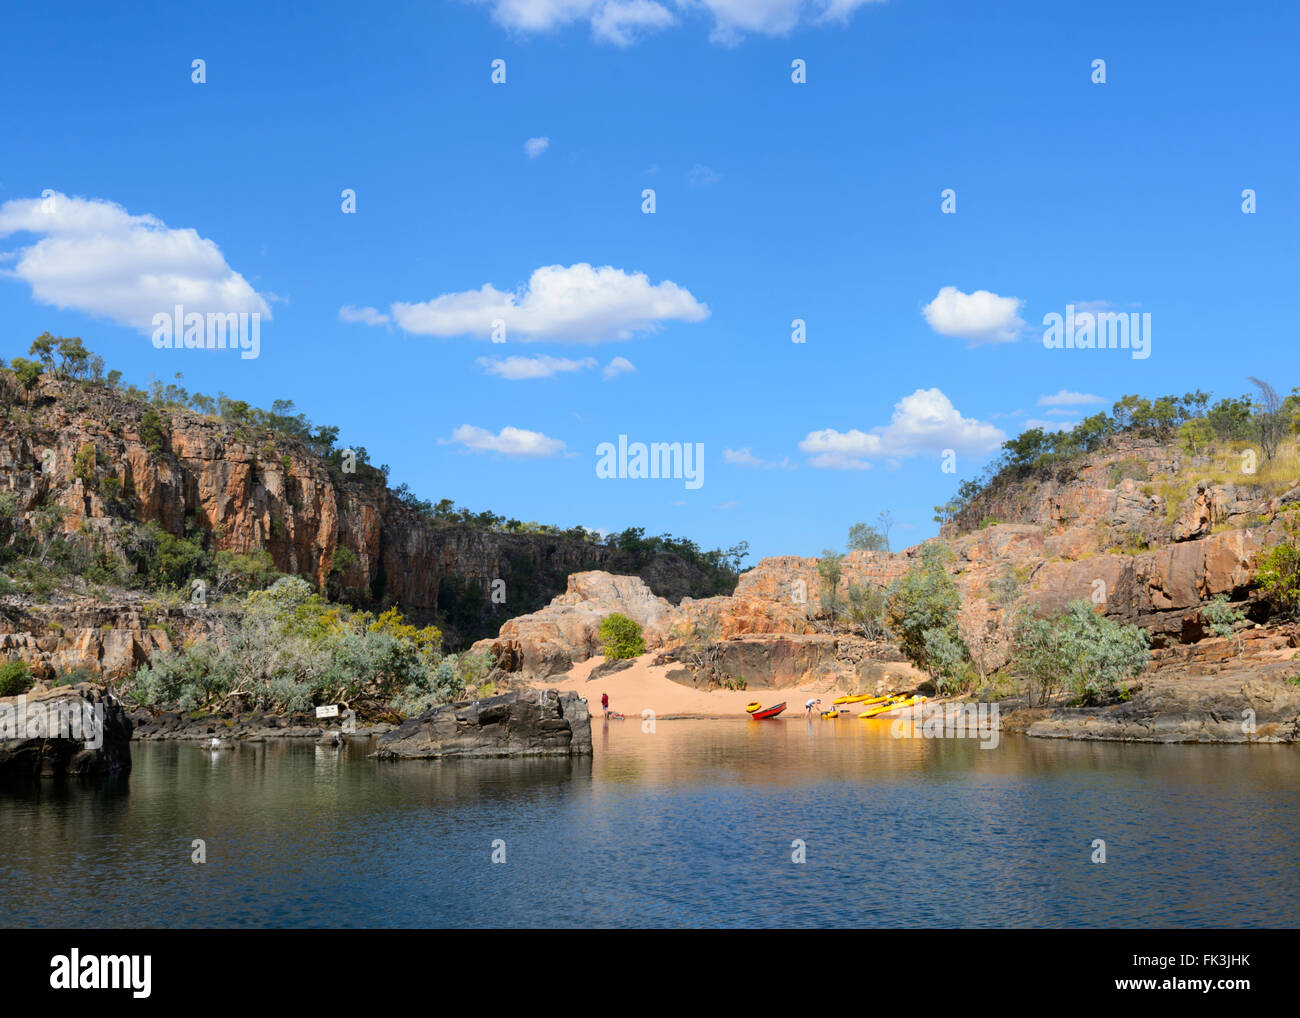 Kayaks in Katherine Gorge, Northern Territory, Australia - Stock Image